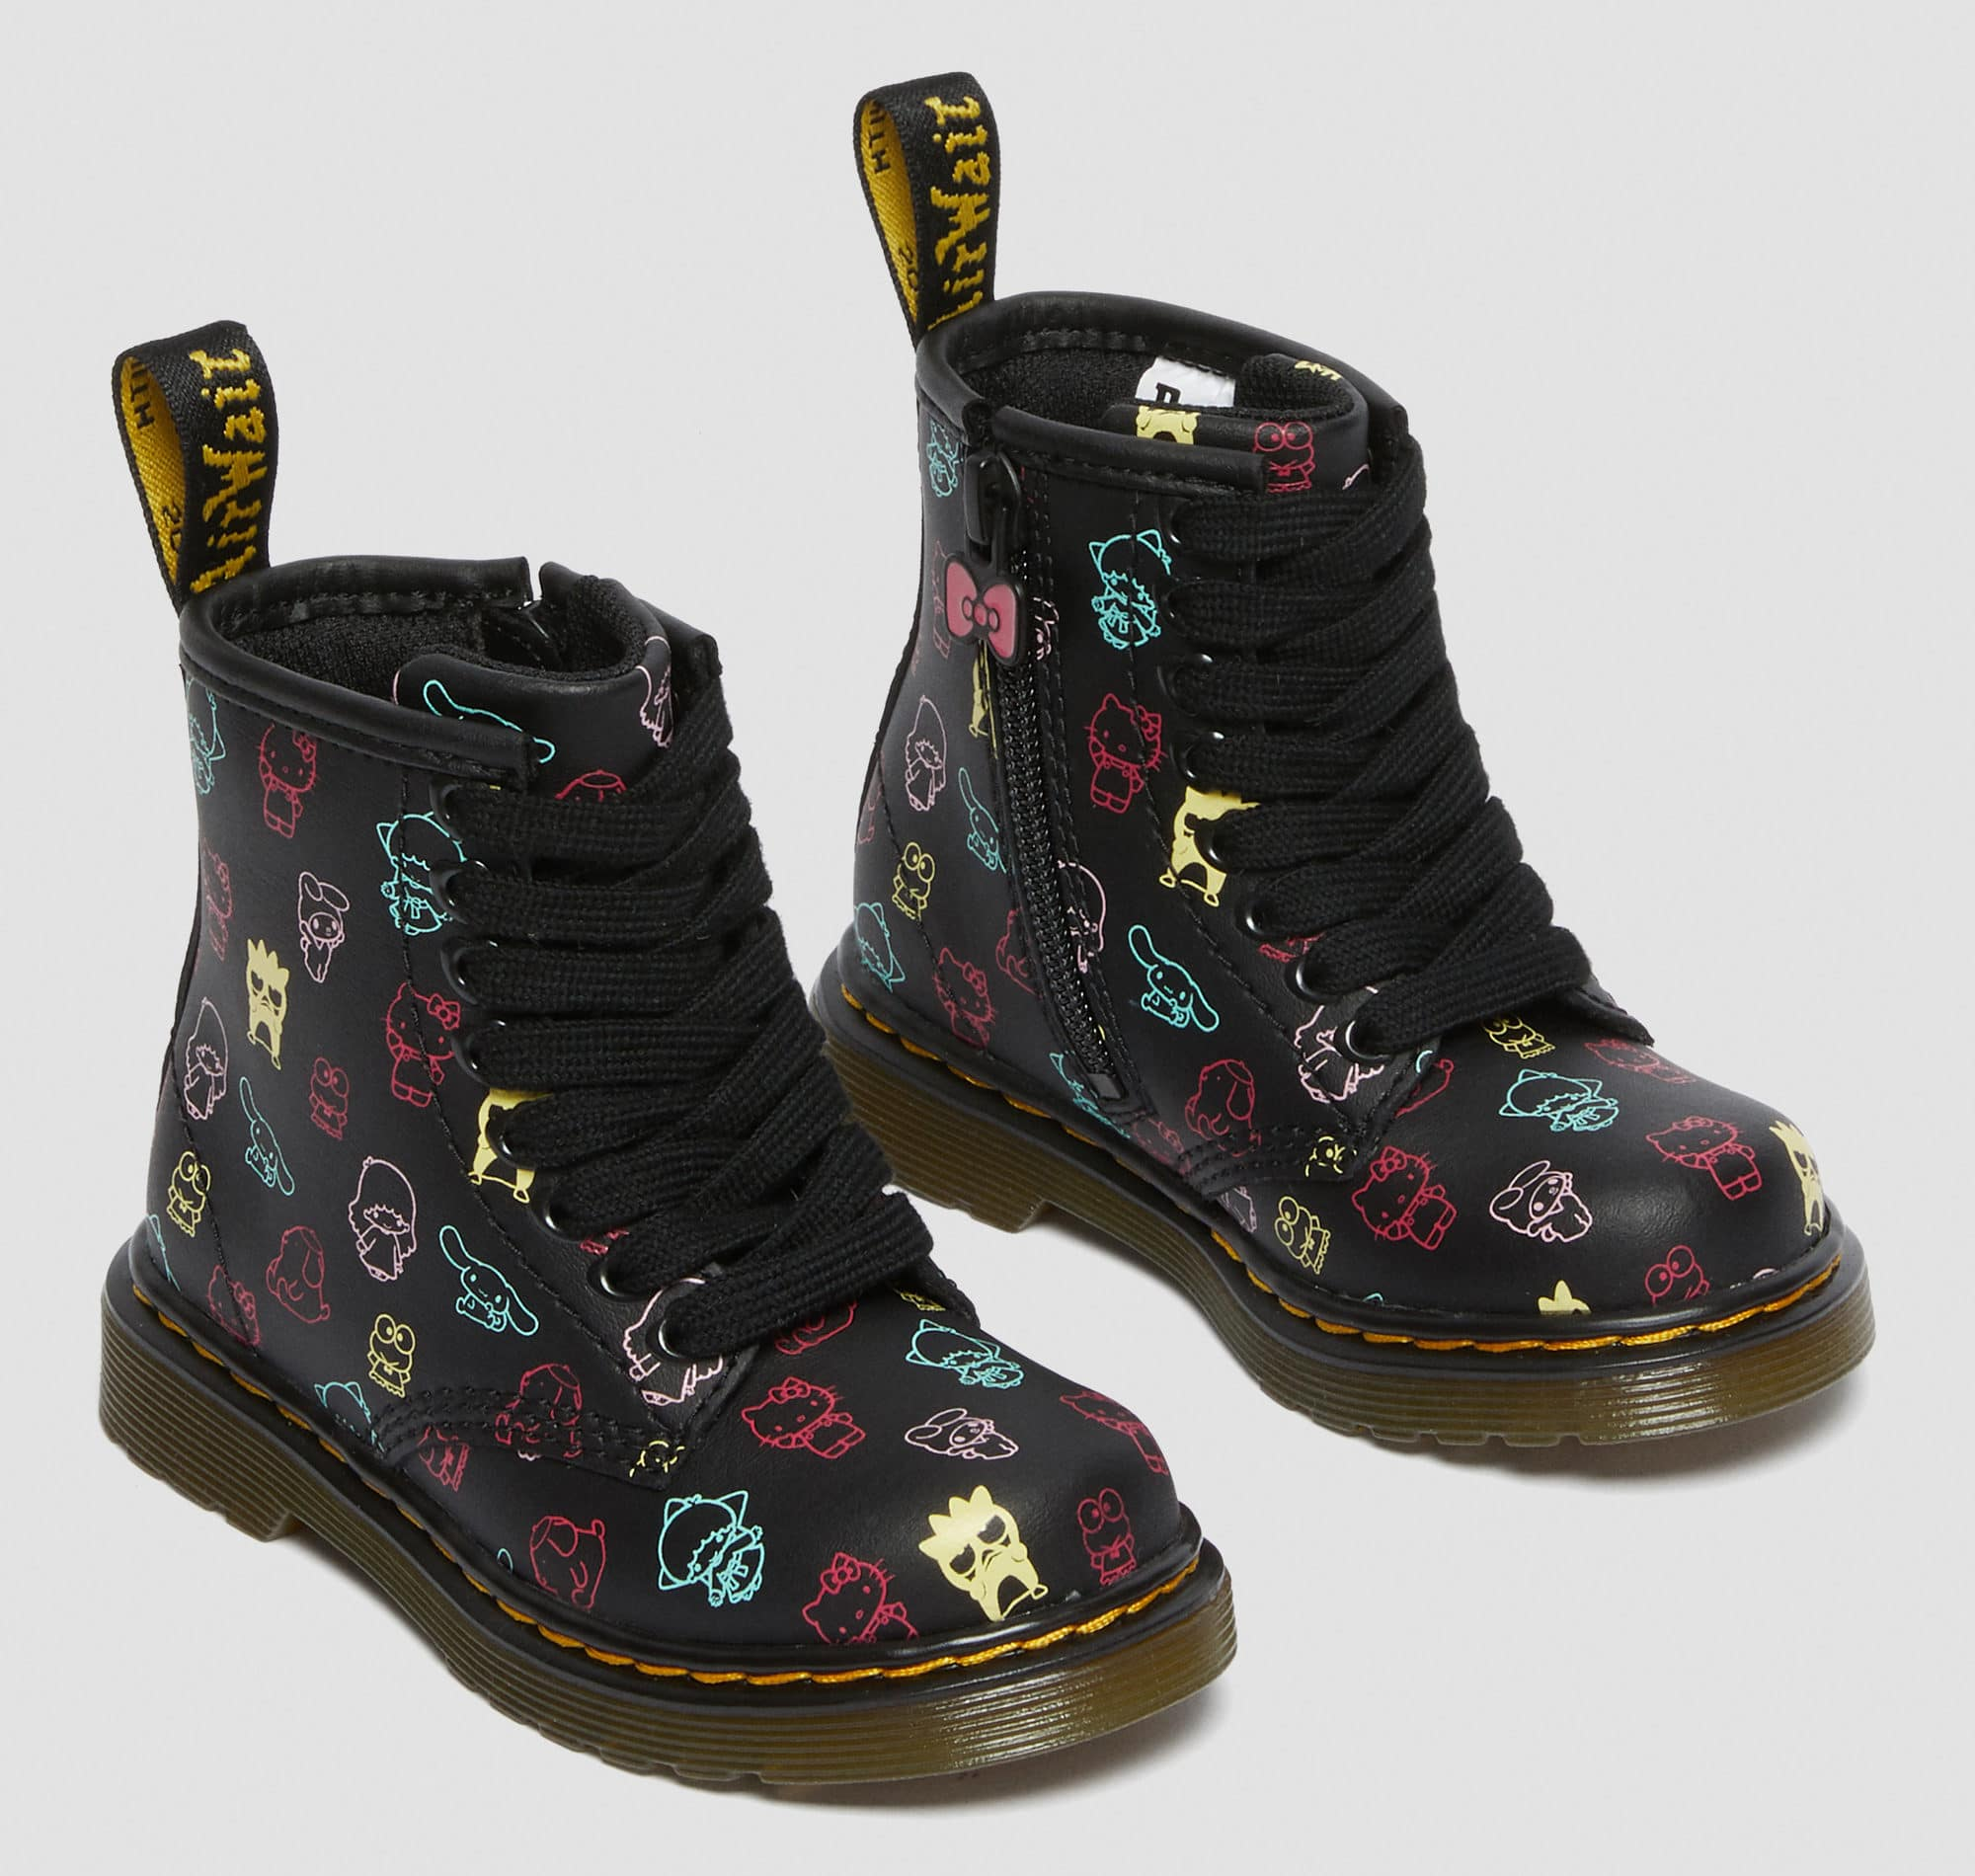 Dr. Martens boots get a cute makeover from Hello Kitty and Friends 15